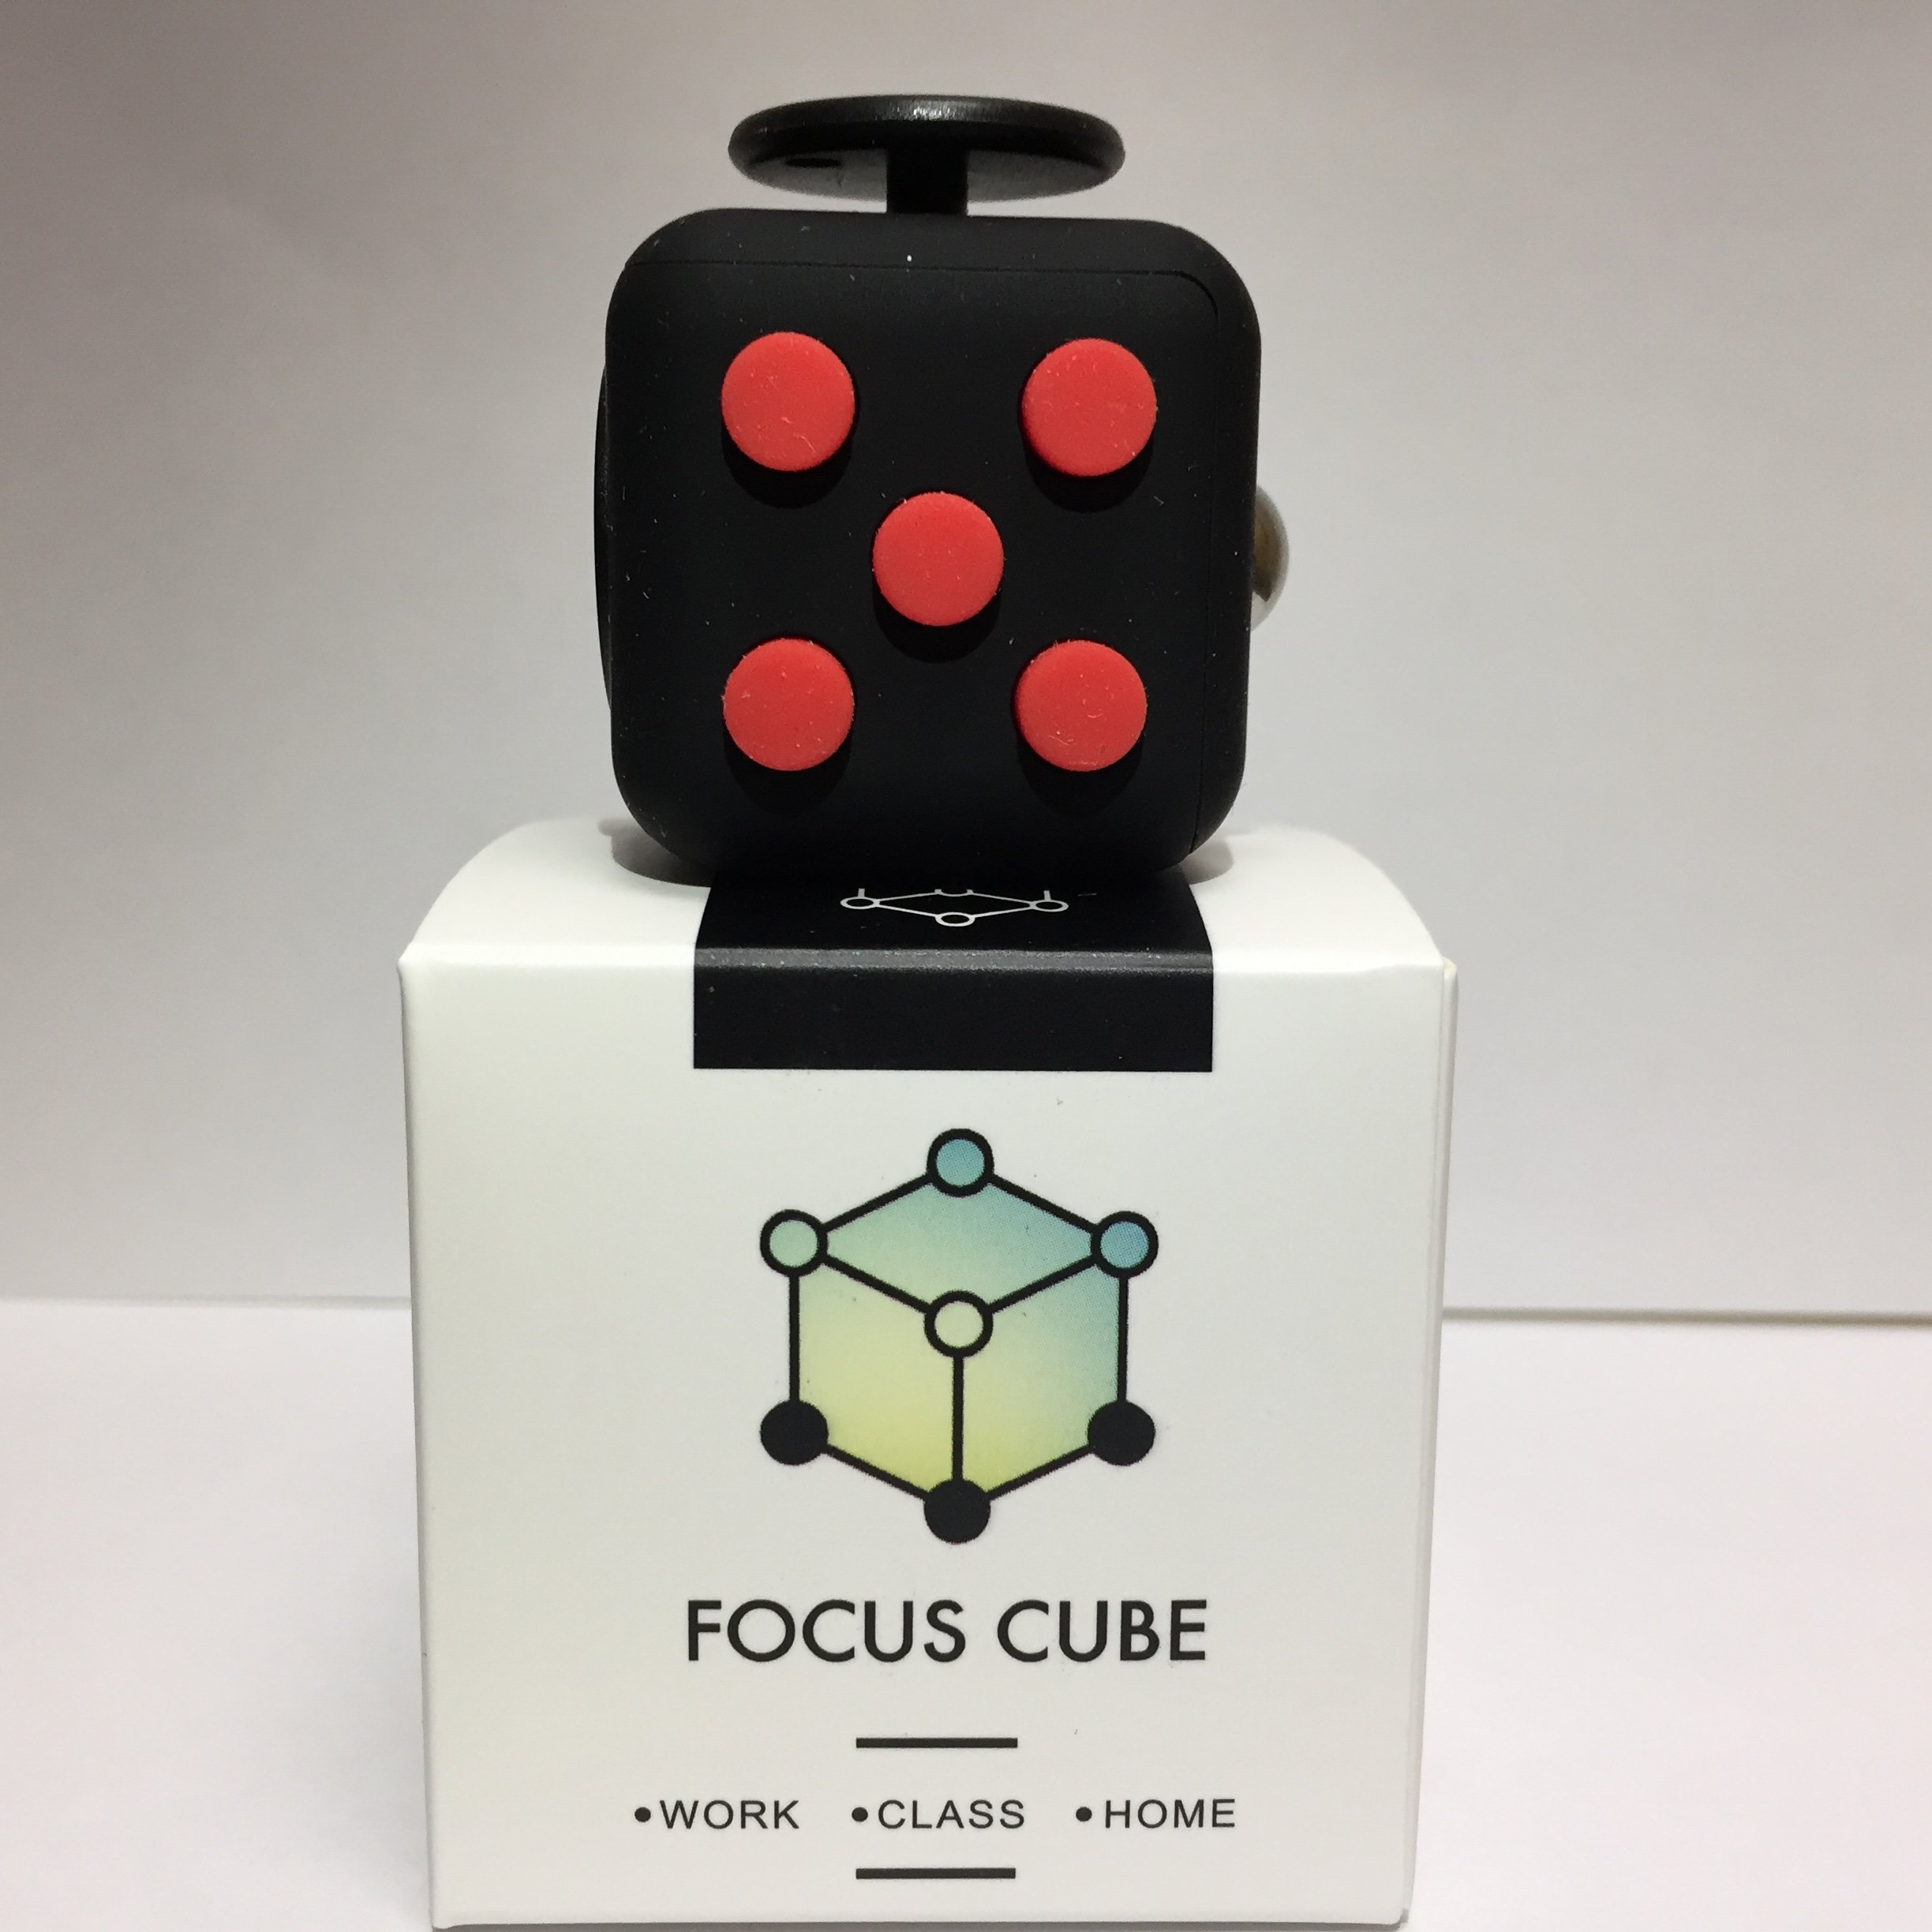 Buy Focus Cube Now!